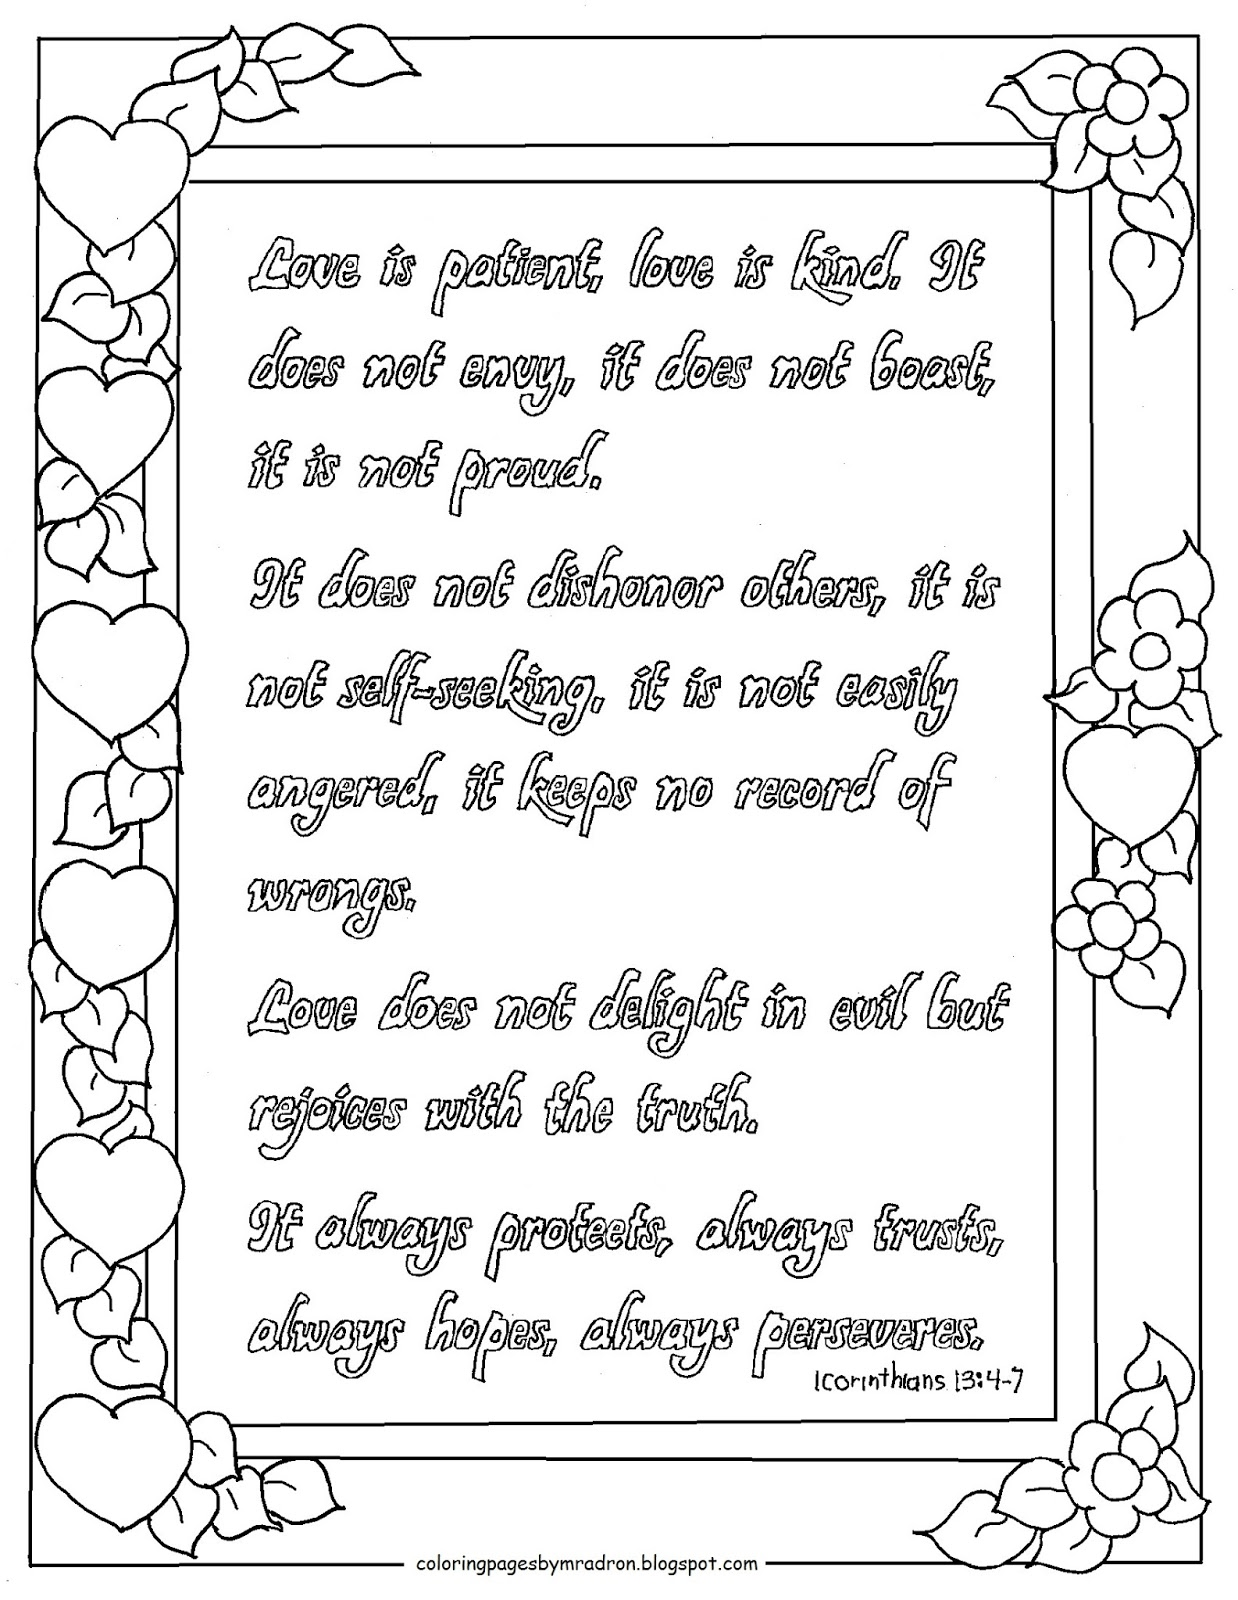 Coloring Pages For Kids By Mr Adron Printable 1 Corinthians 13 4 7 Coloring Page